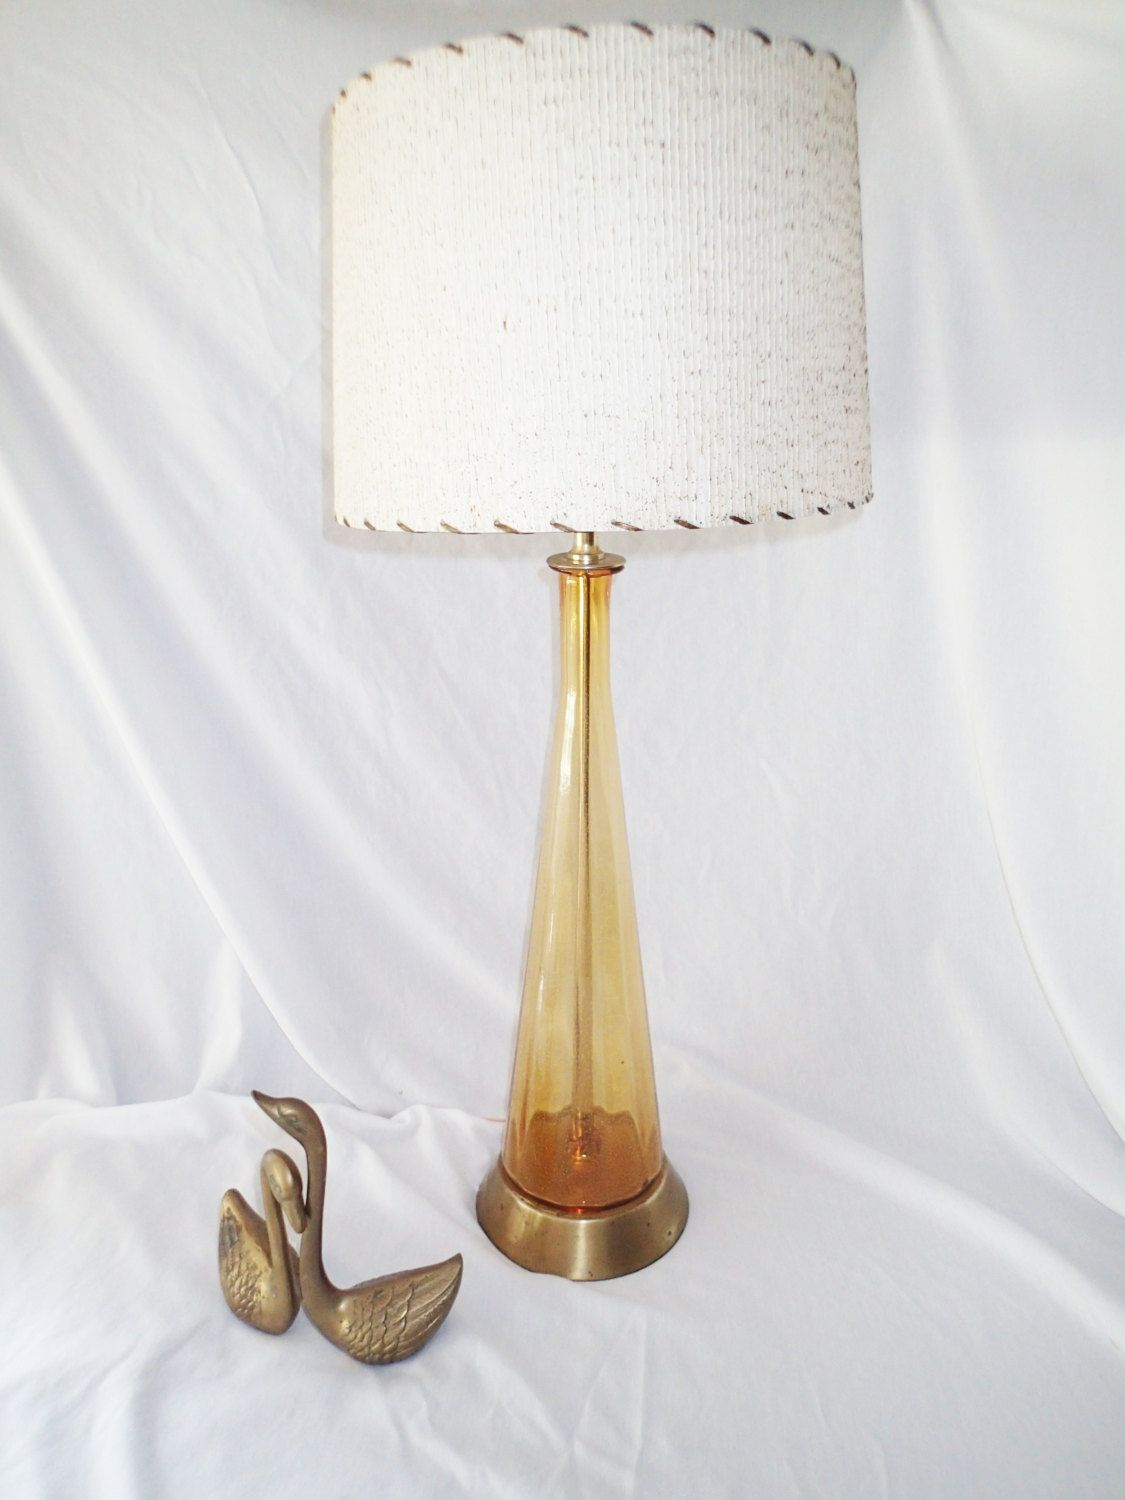 Table lamp blenco bubble glass 1960s mcm hand blown glass topaz table lamp blenco bubble glass 1960s mcm hand blown glass topaz bottle lamp mid century geotapseo Image collections